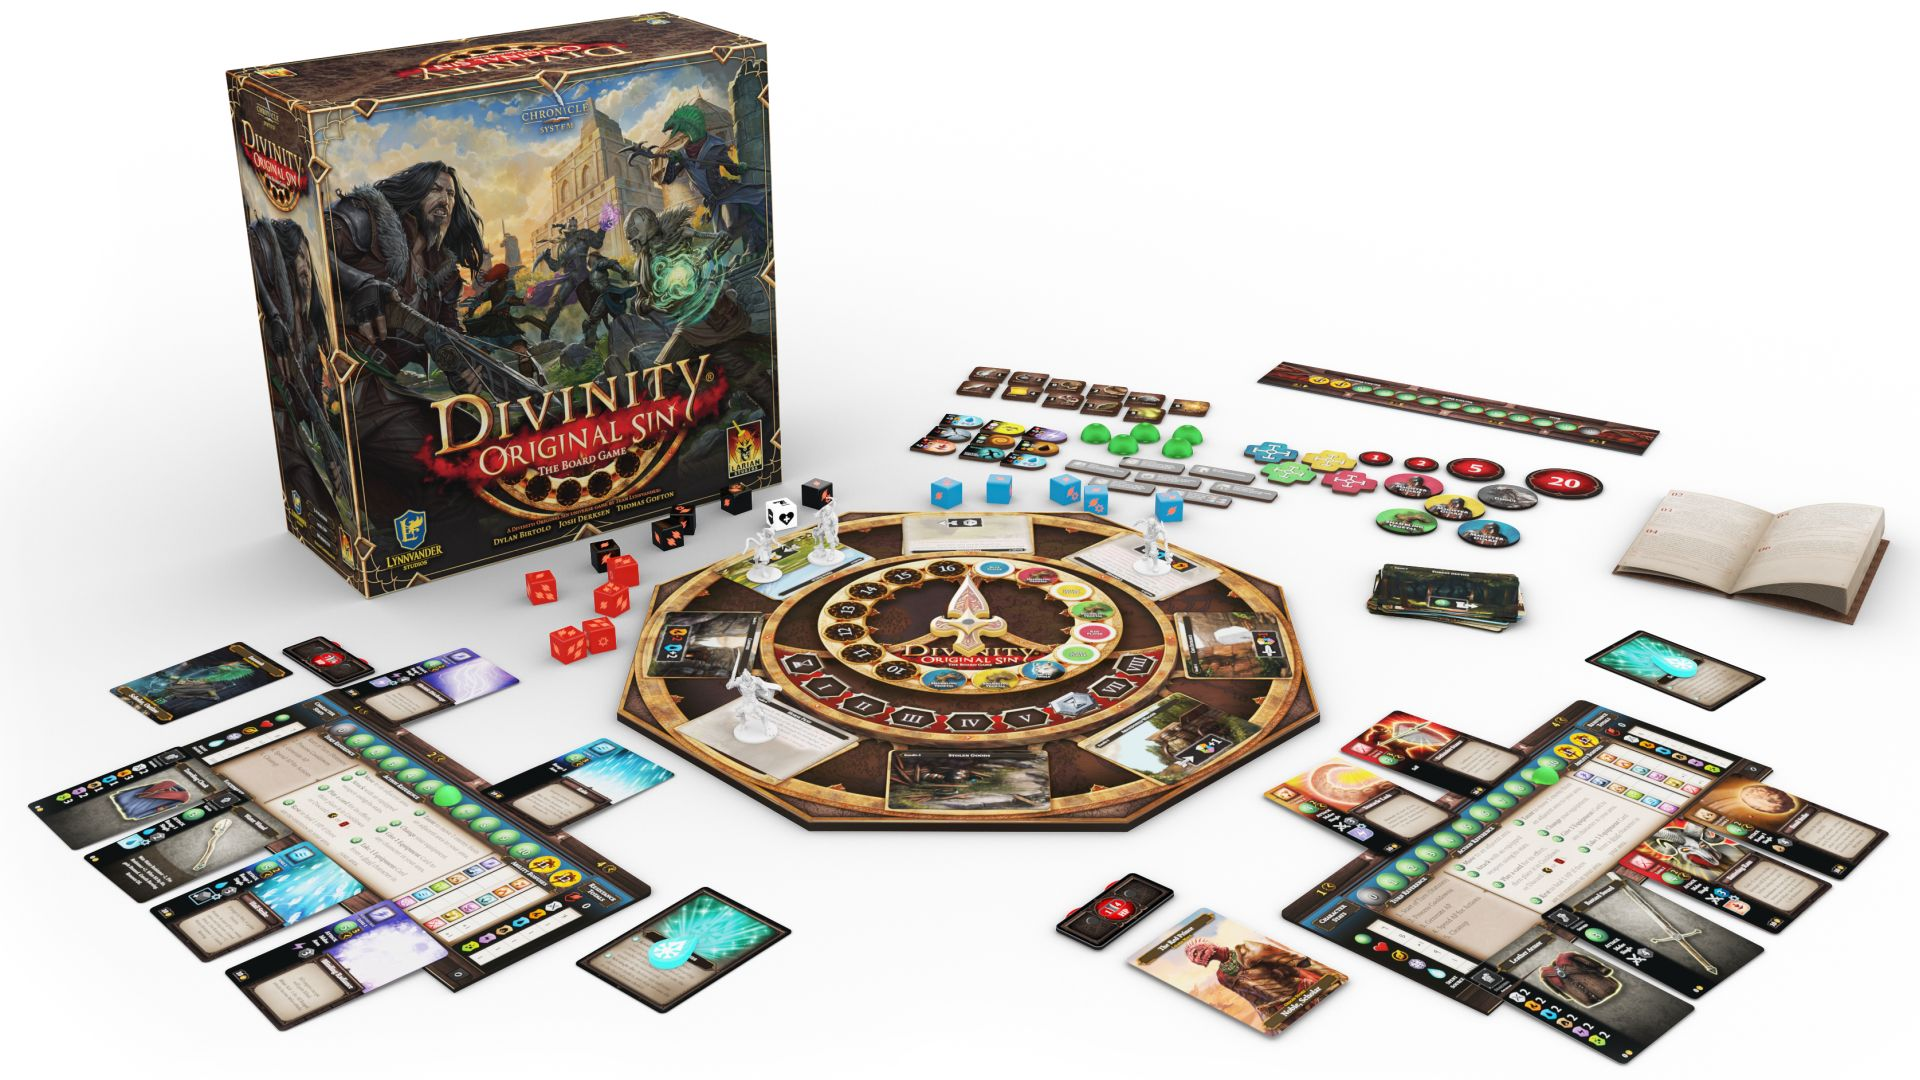 The Divinity: Original Sin board game is wonderfully familiar